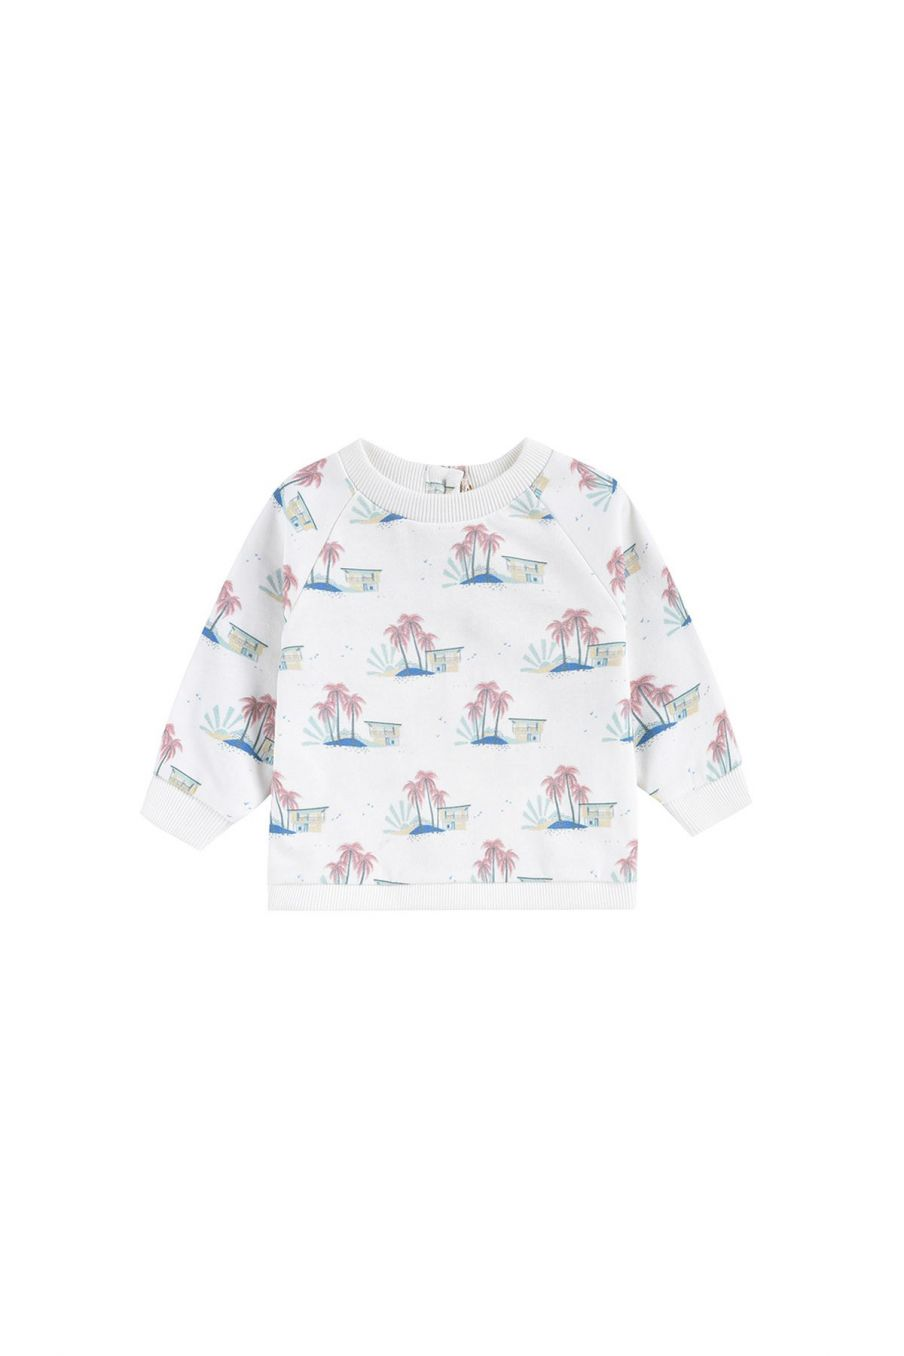 boheme chic vintage sweat garcon afalo off-white hawaï